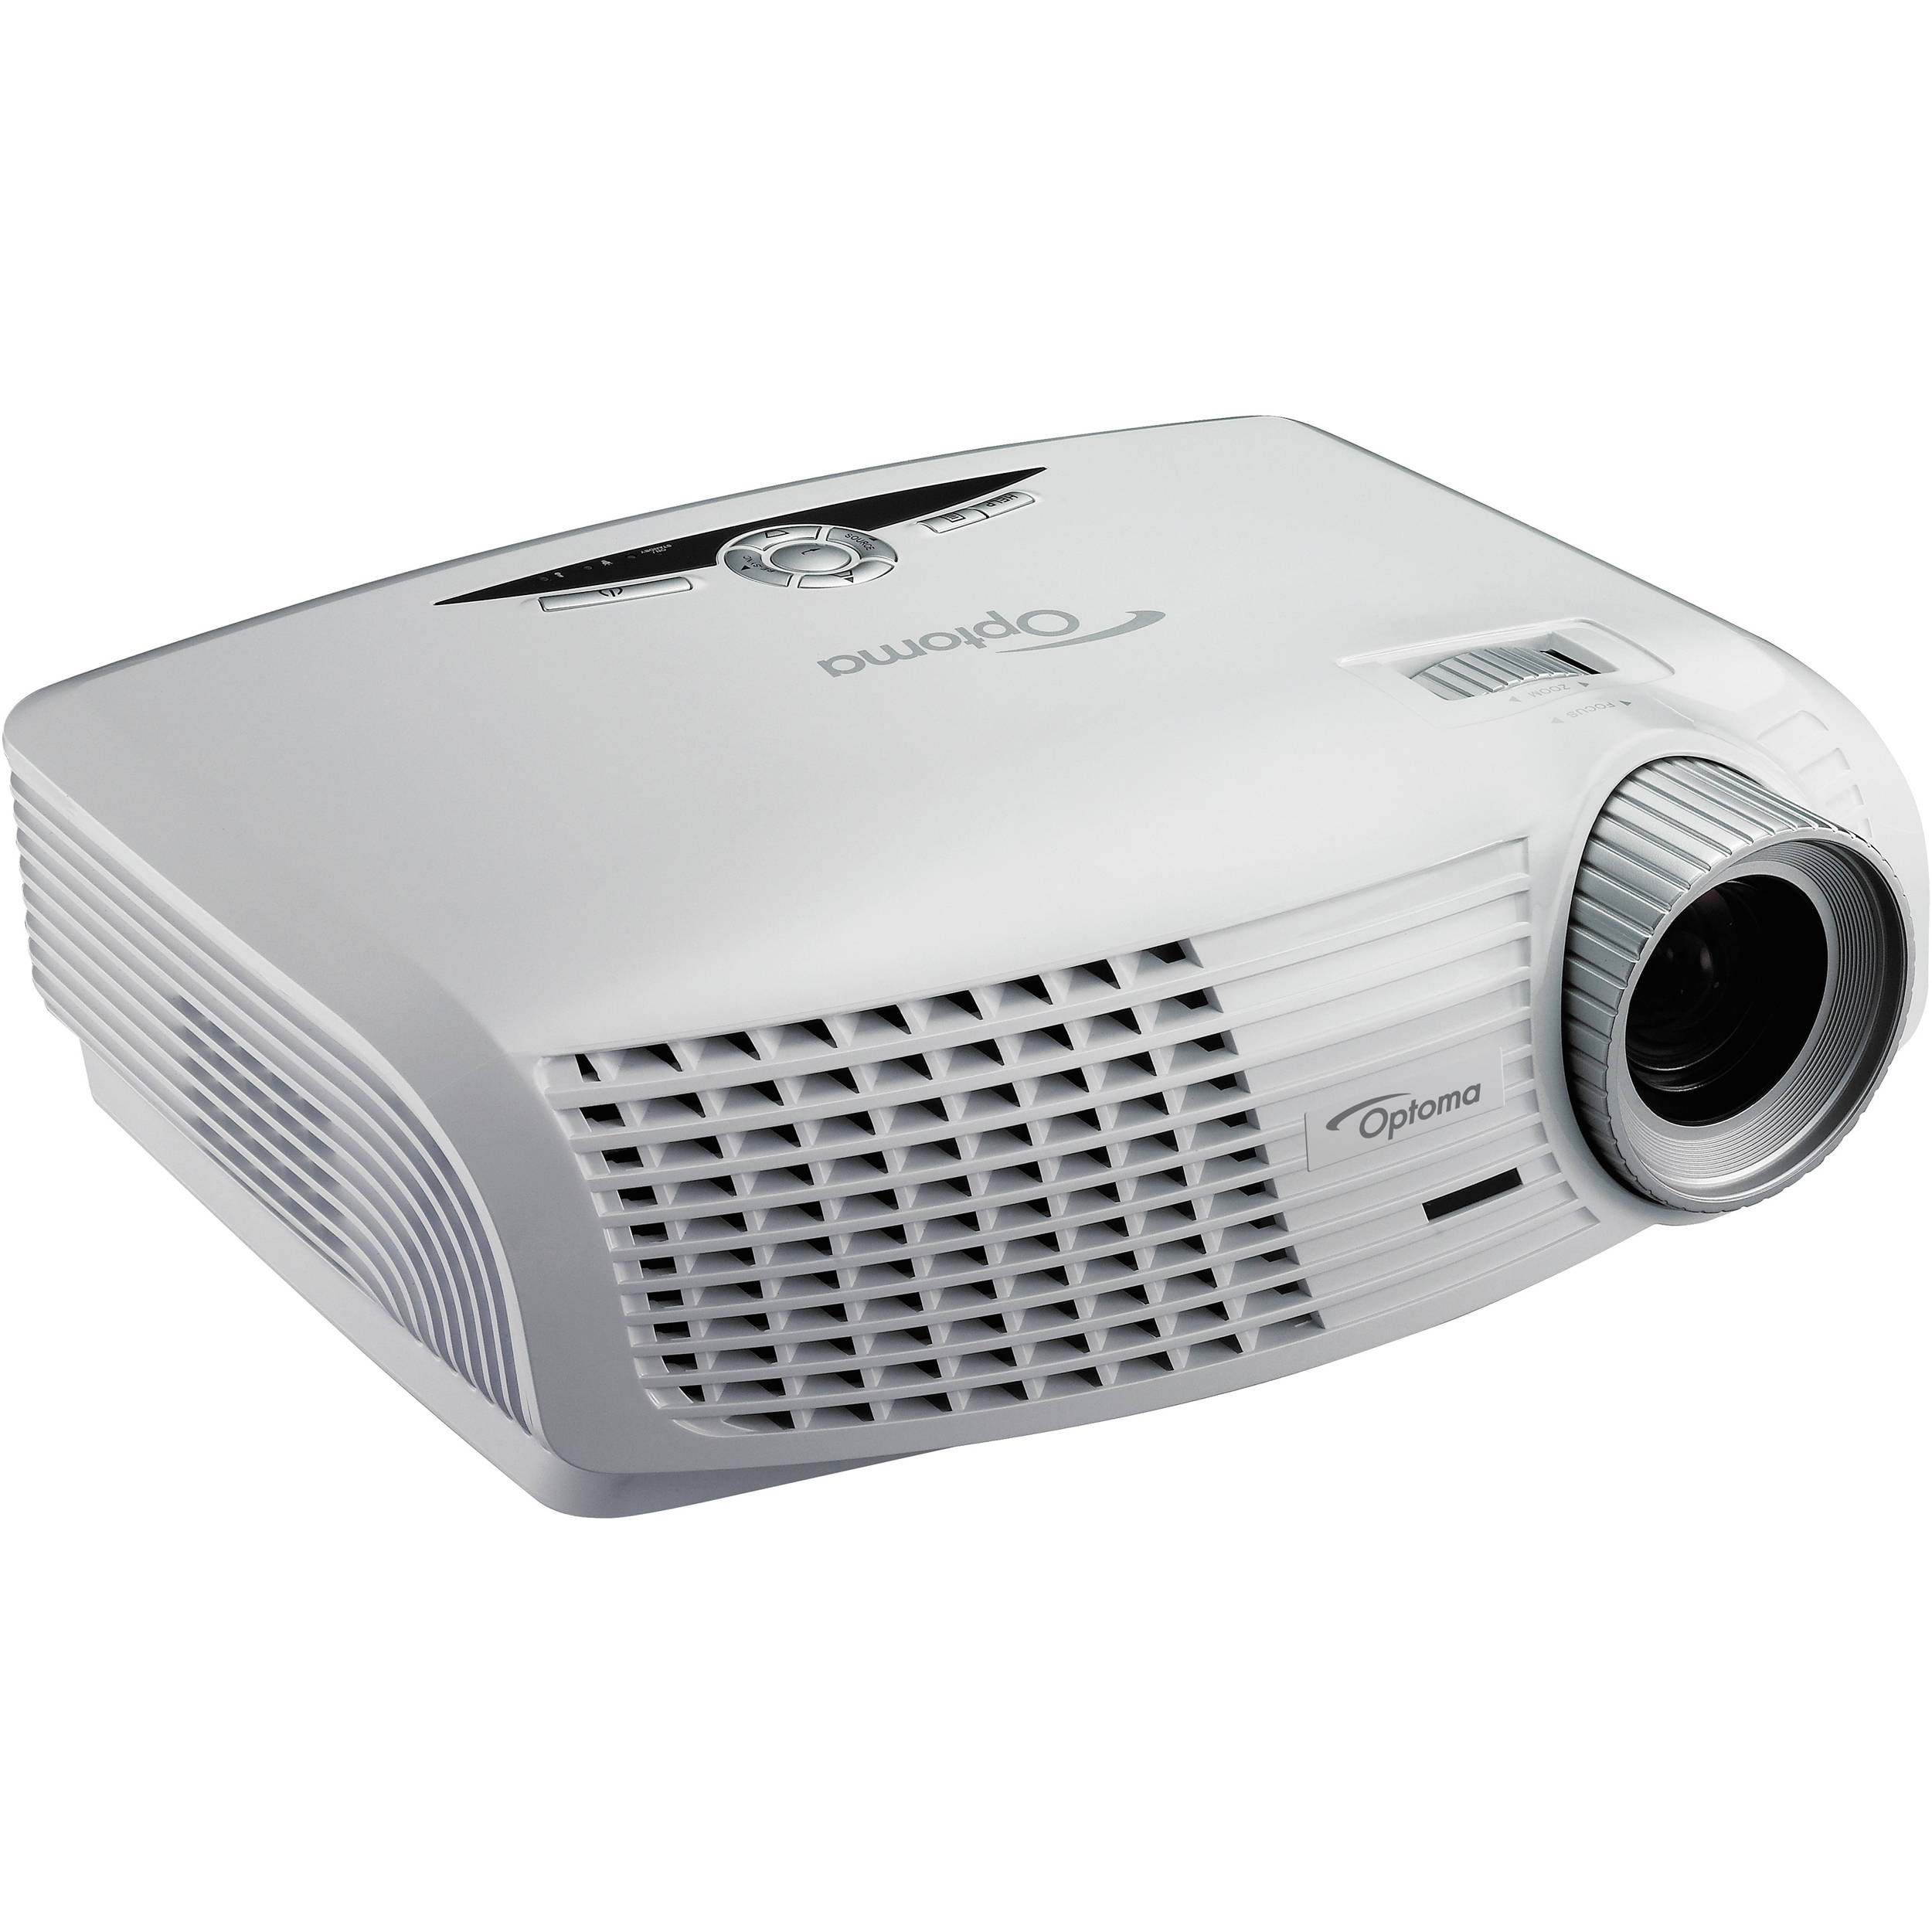 Optoma technology hd25e full hd 1080p dlp 3d projector for Hd video projector